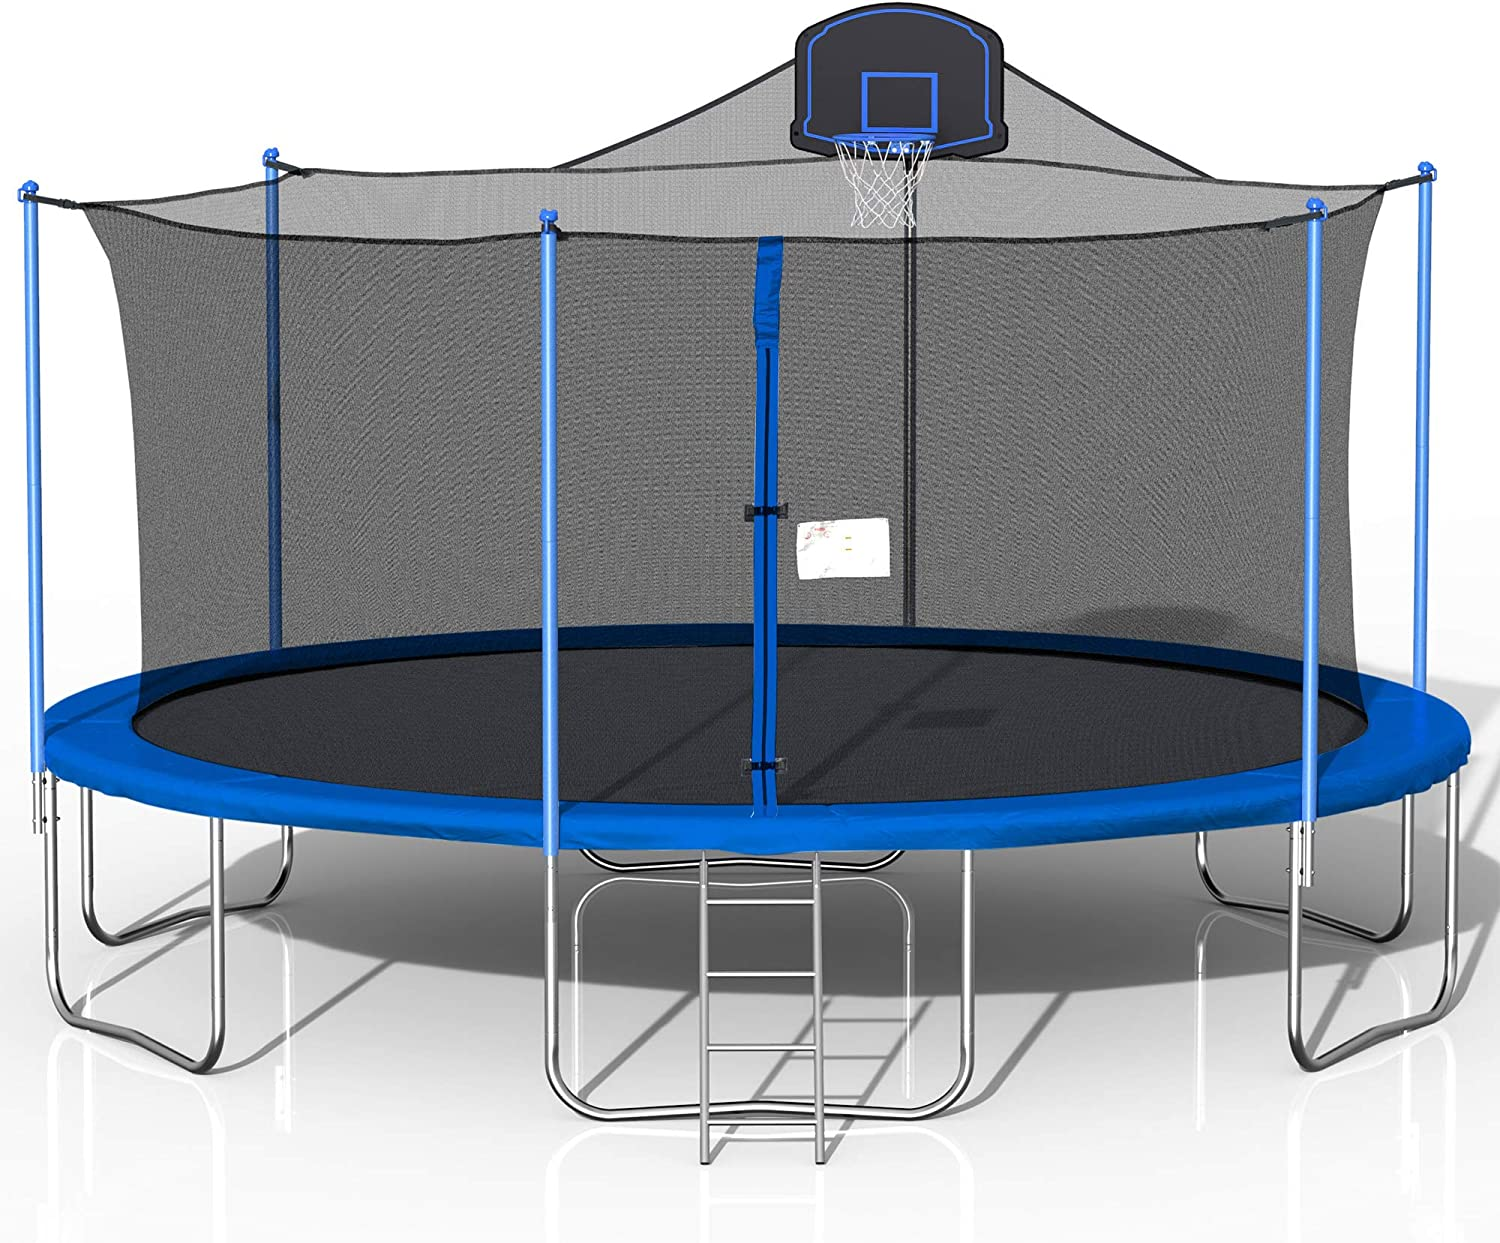 Awlstar 16ft Outdoor Trampoline For Kids And Adults With Safety Enclosure Net Basketball Hoop And Ladder Blue Sports Outdoors